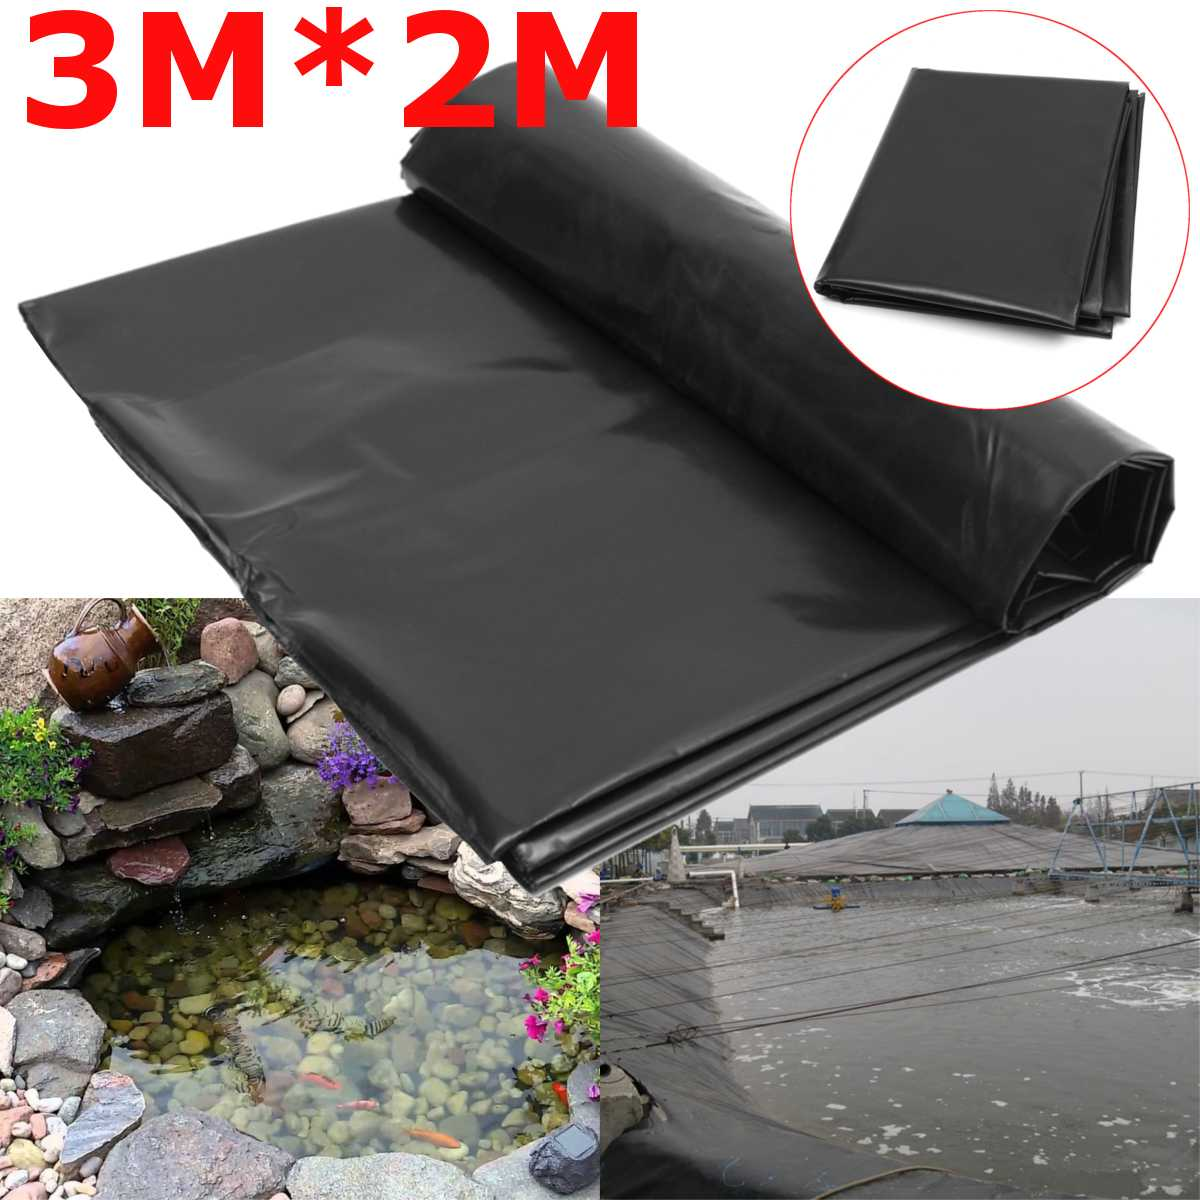 3X2M Black Fish Pond Liner Cloth Home Garden Pool Reinforced HDPE Heavy   Landscaping Pool Pond Waterproof Liner Cloth New3X2M Black Fish Pond Liner Cloth Home Garden Pool Reinforced HDPE Heavy   Landscaping Pool Pond Waterproof Liner Cloth New